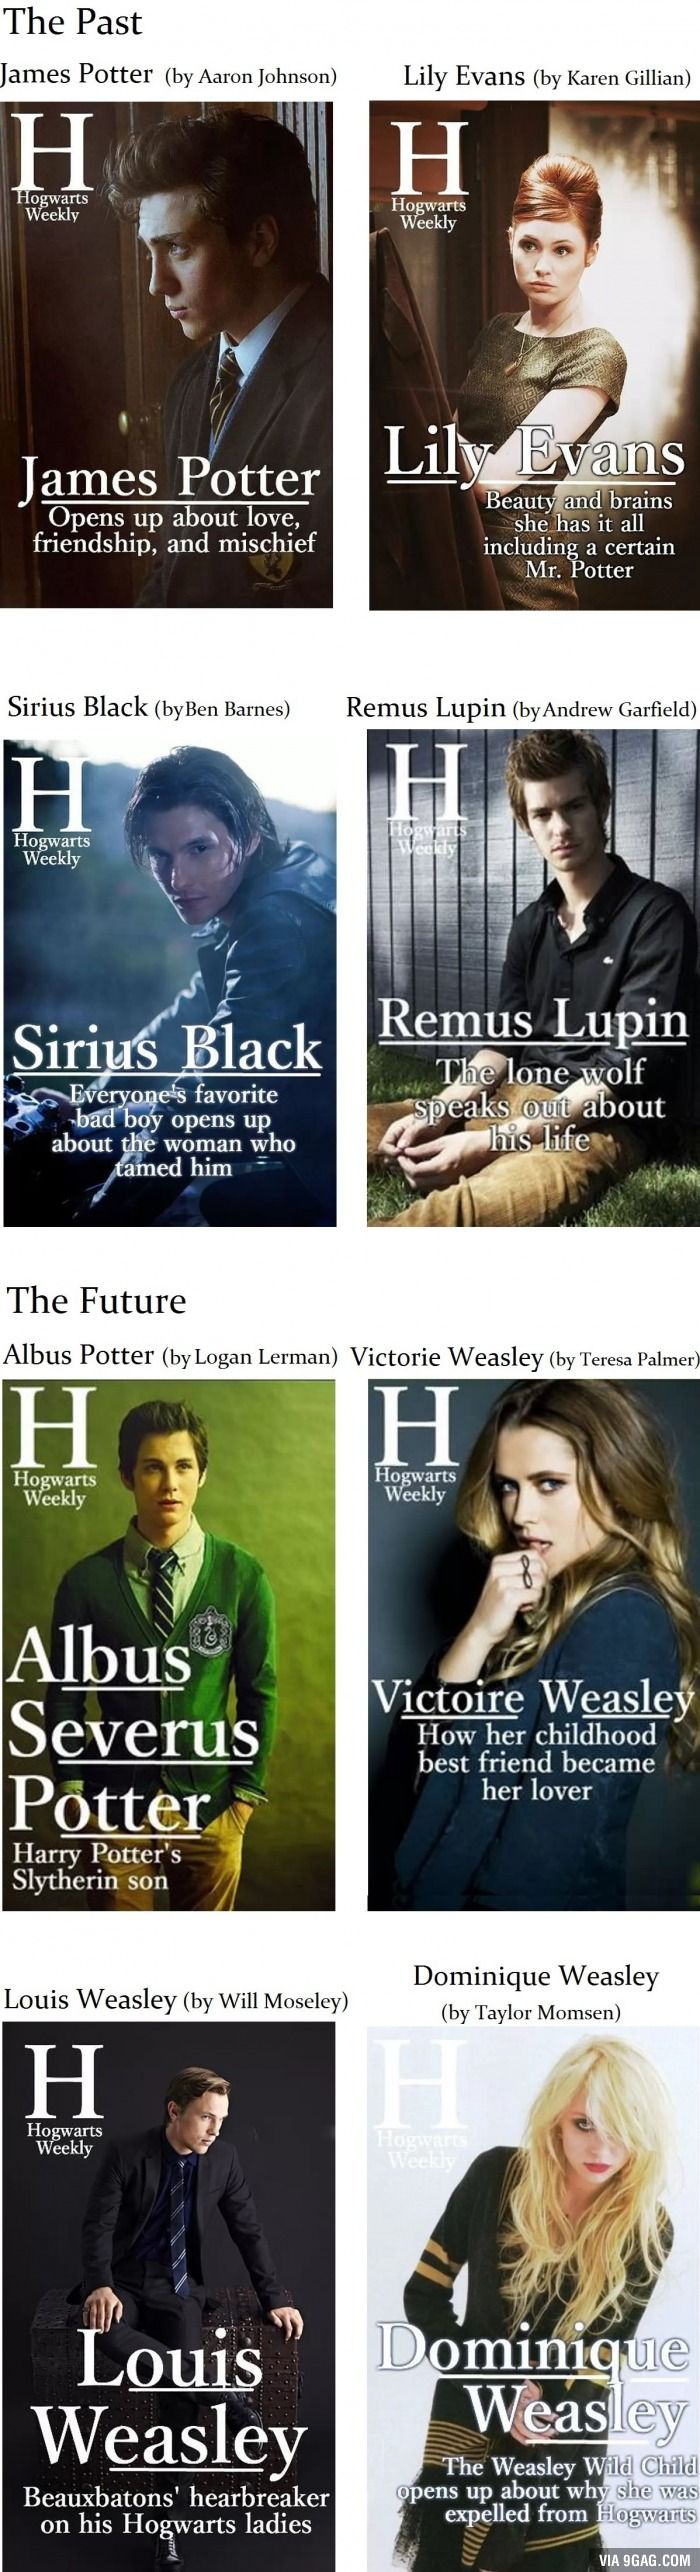 PERFECT. PERFECT, PERFECT!!! <3 Harry Potter - The Past and the Future in Magazine Covers